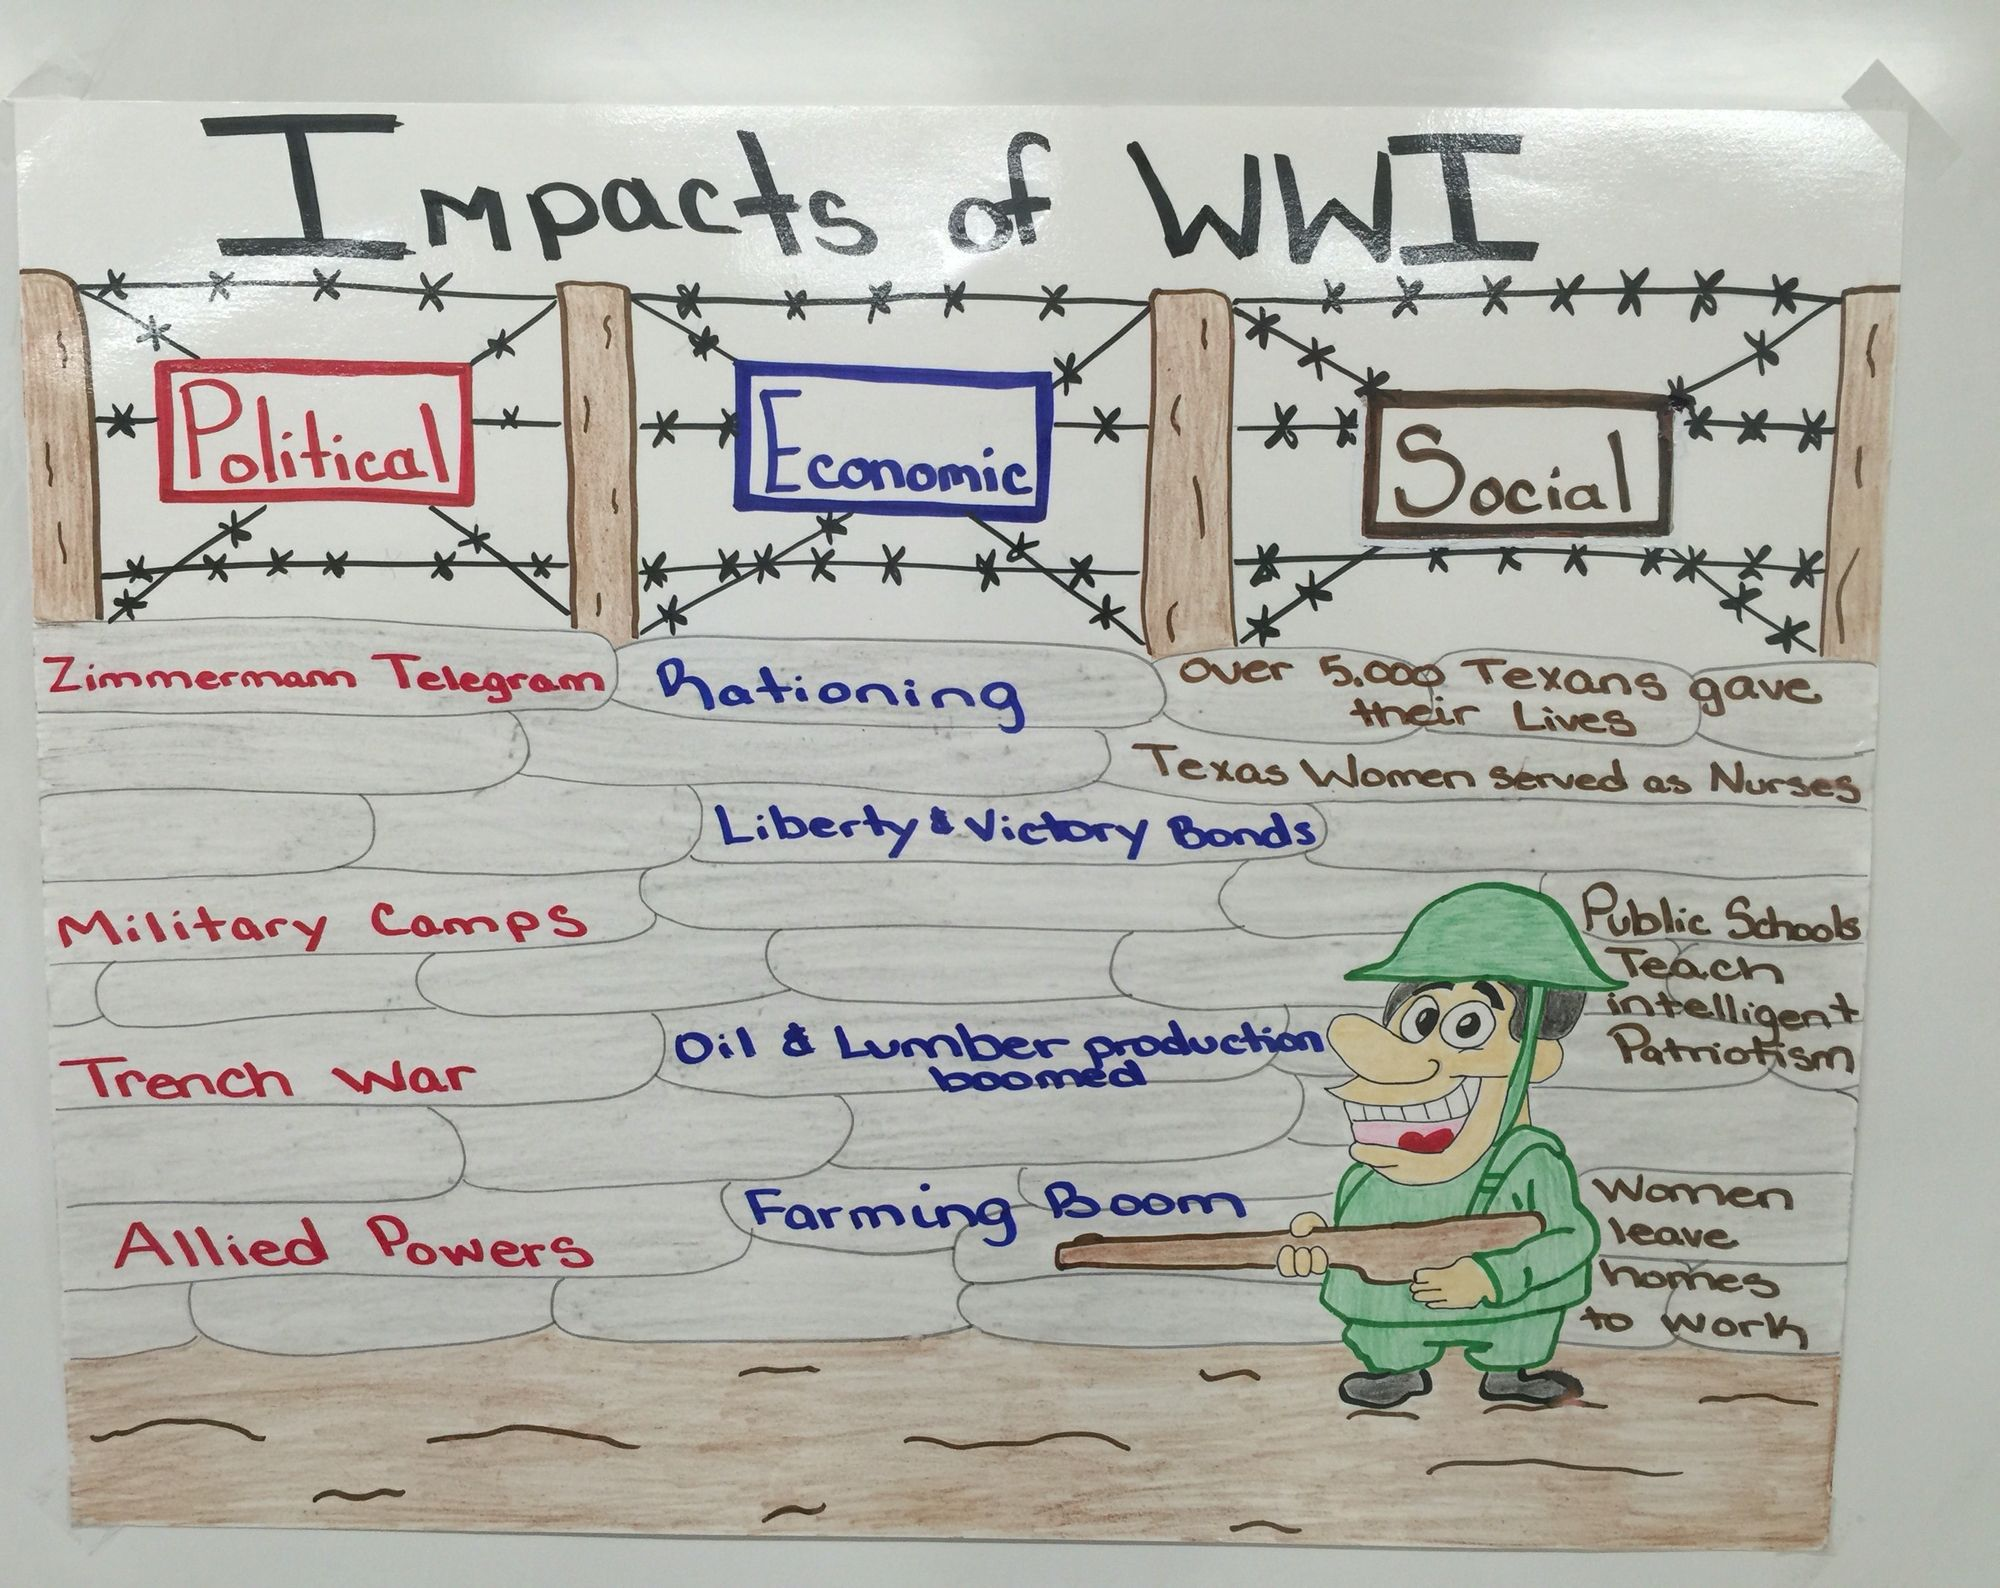 Political Economic And Social Impacts Of Wwi Anchor